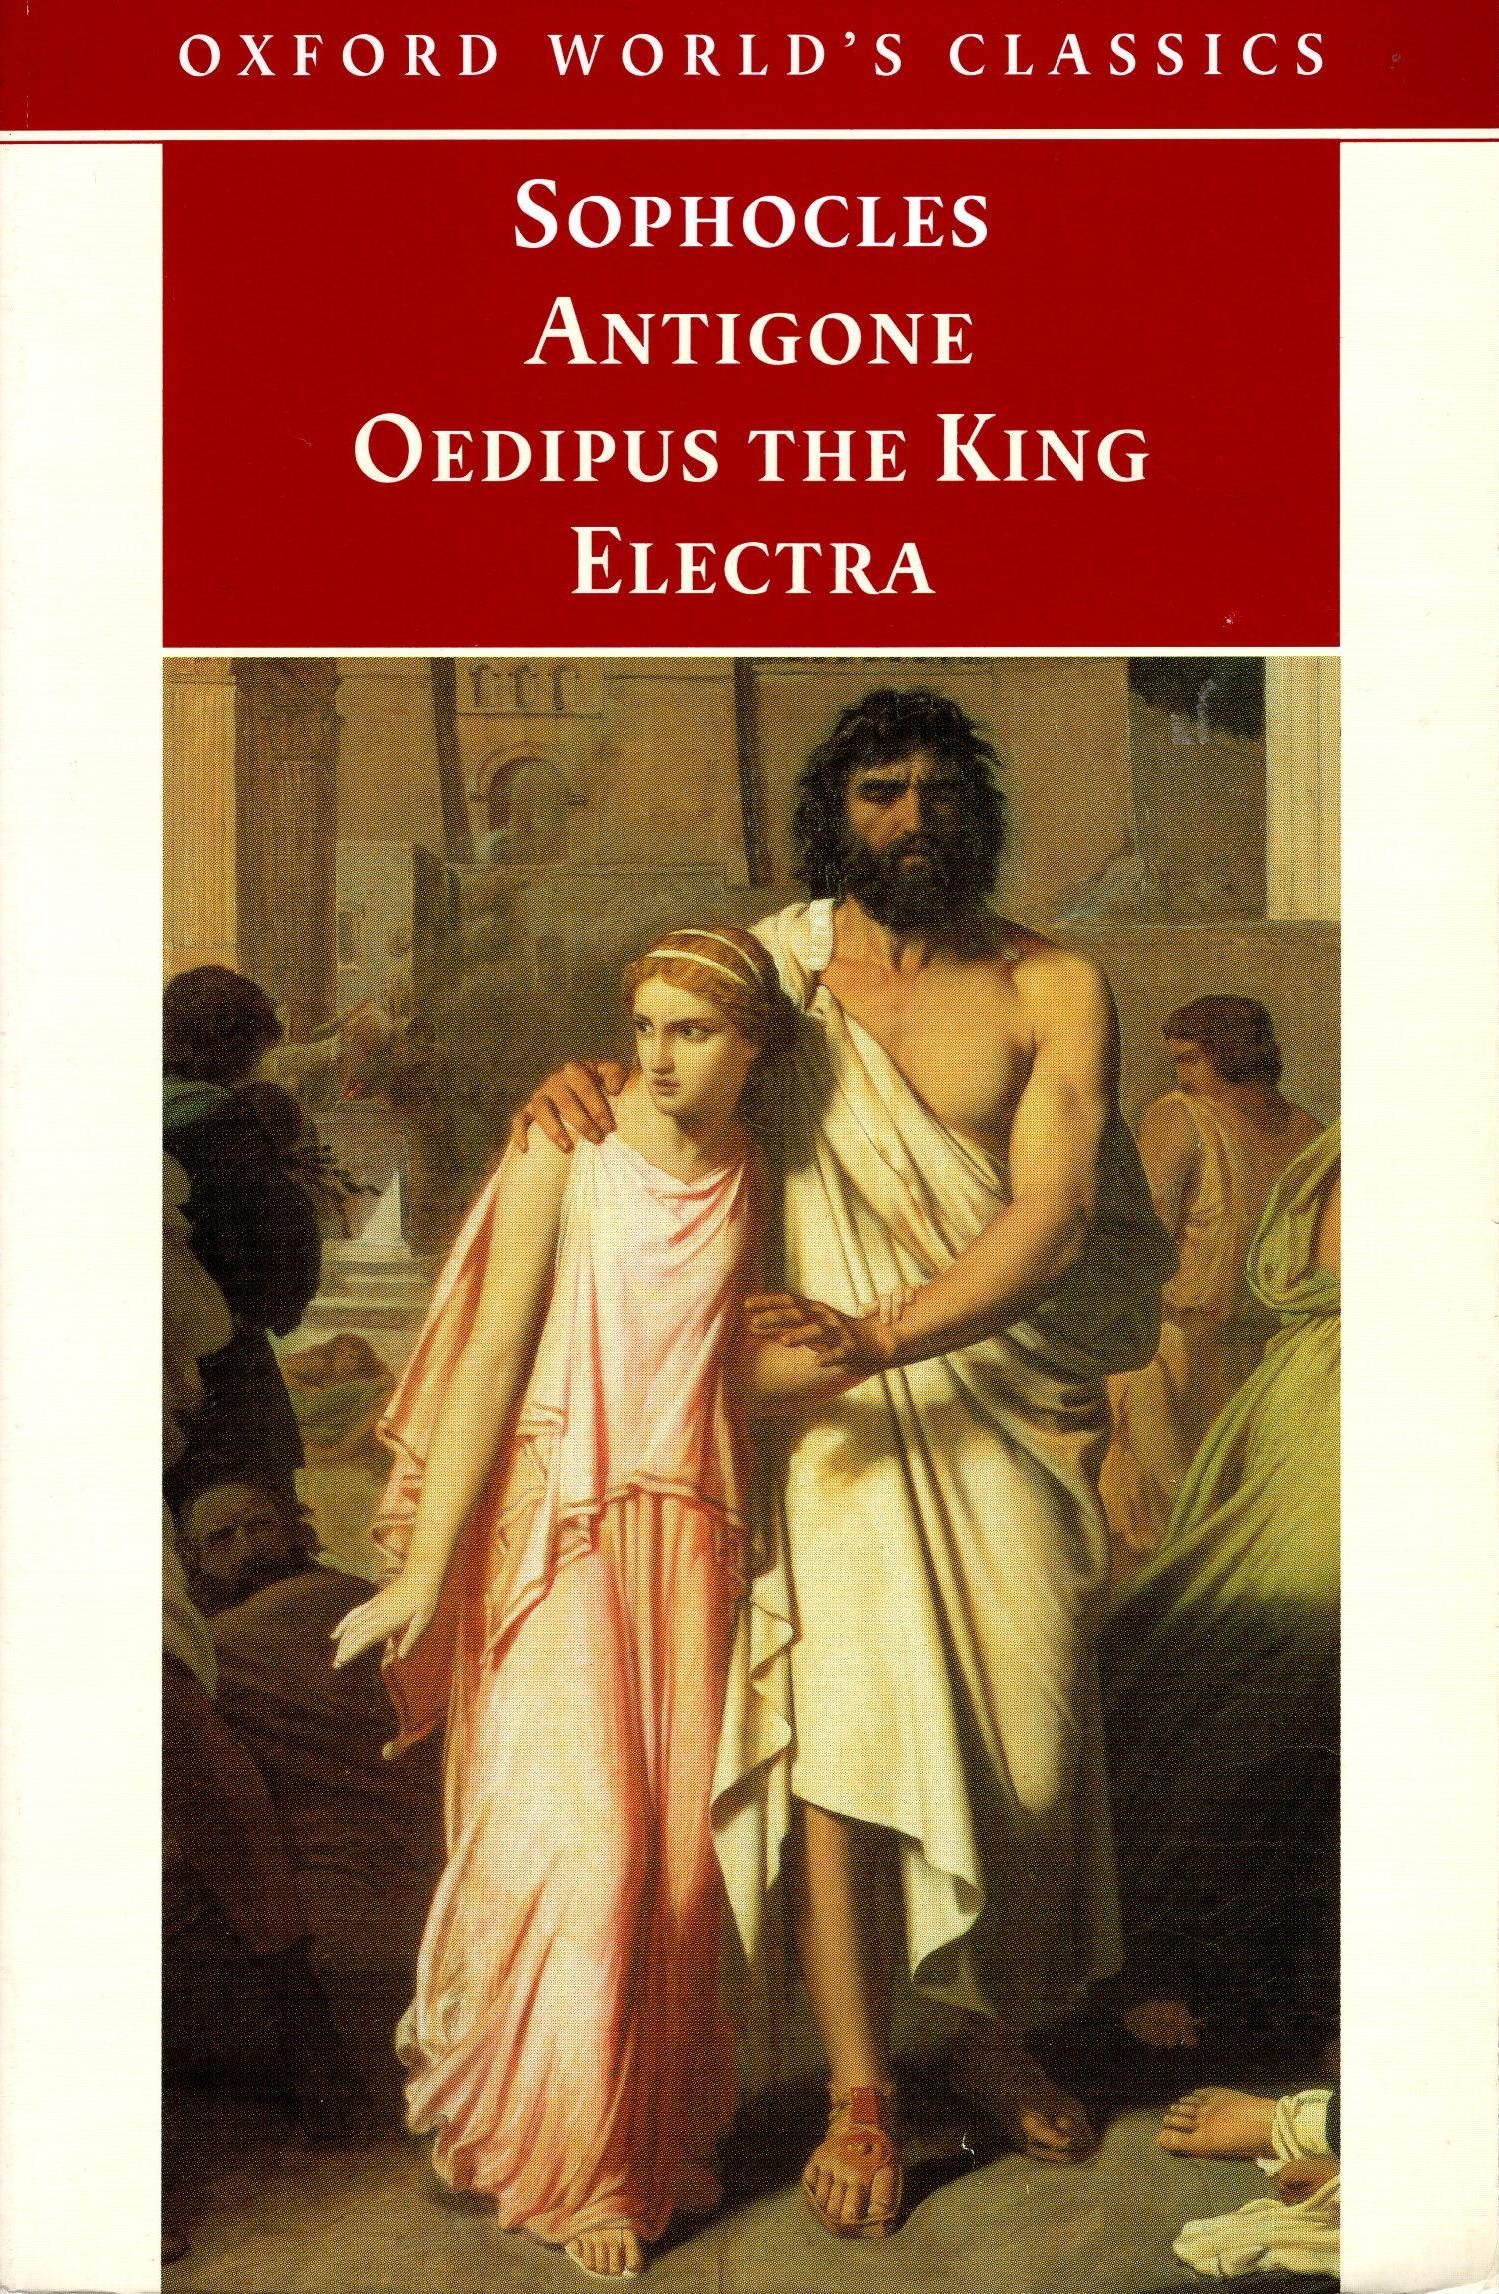 Image for ANTIGONE, OEDIPUS THE KING, ELECTRA